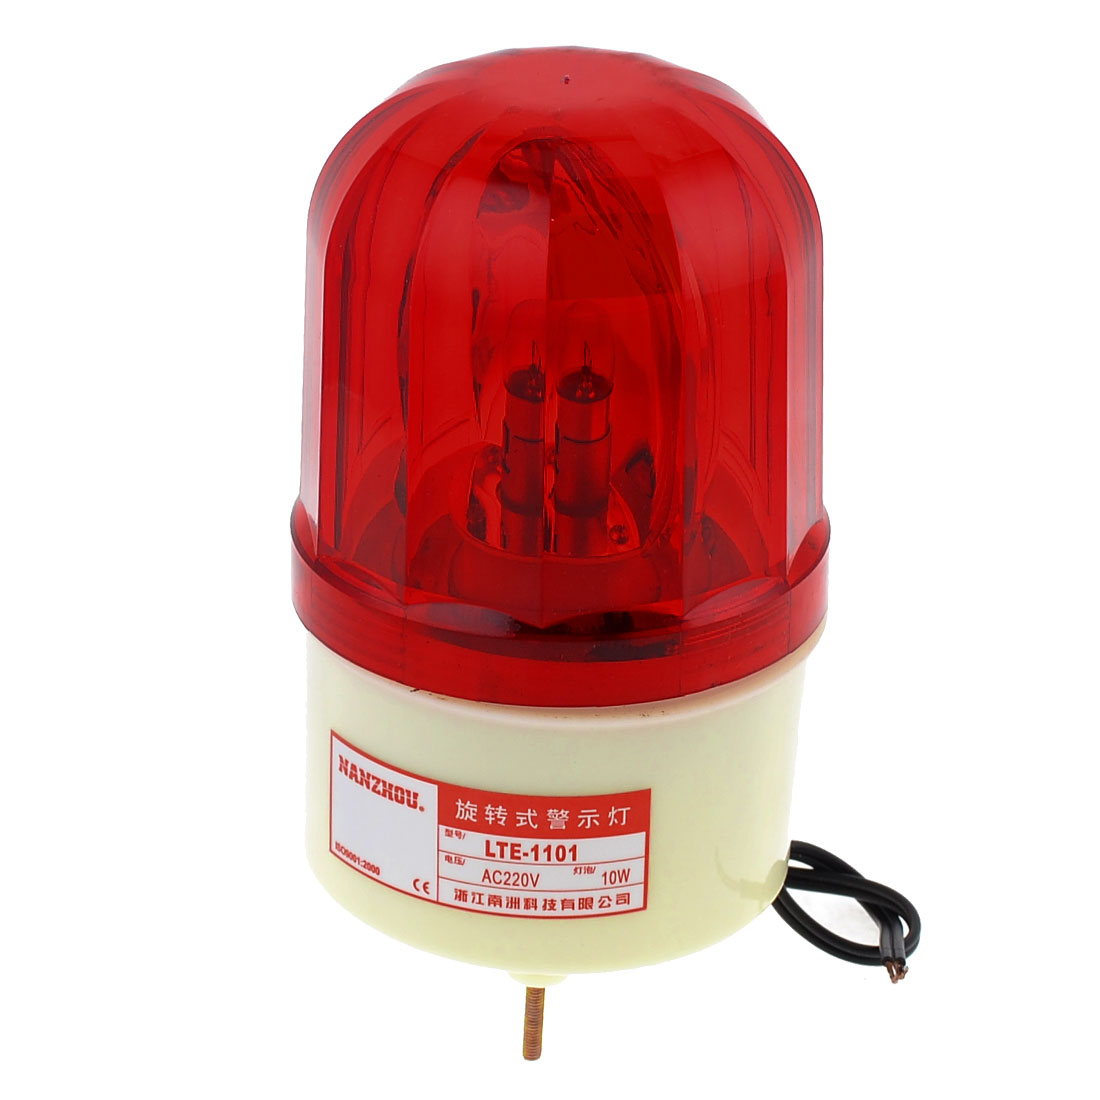 AC 220V 10W Buzzer Sound Industrial Signal Tower Rotating Light Warning Lamp